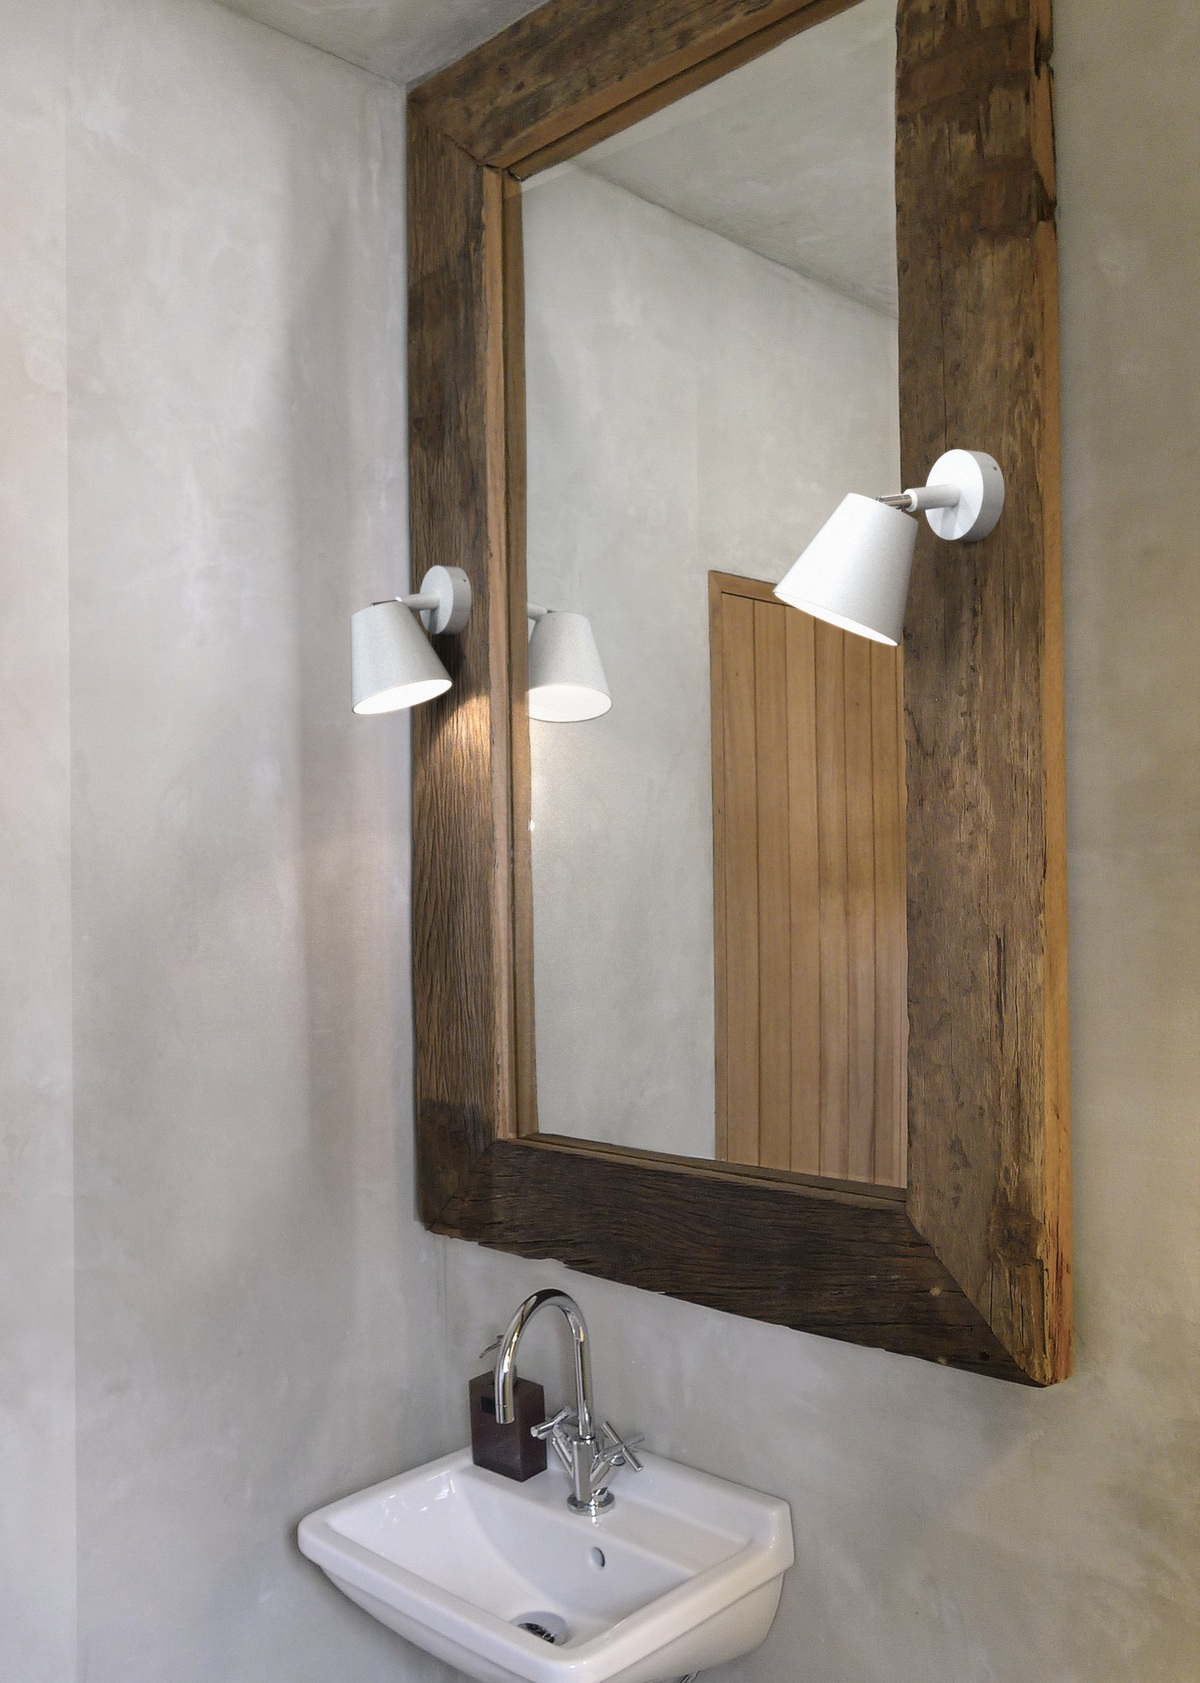 Bathroom Mirror With Spotlights